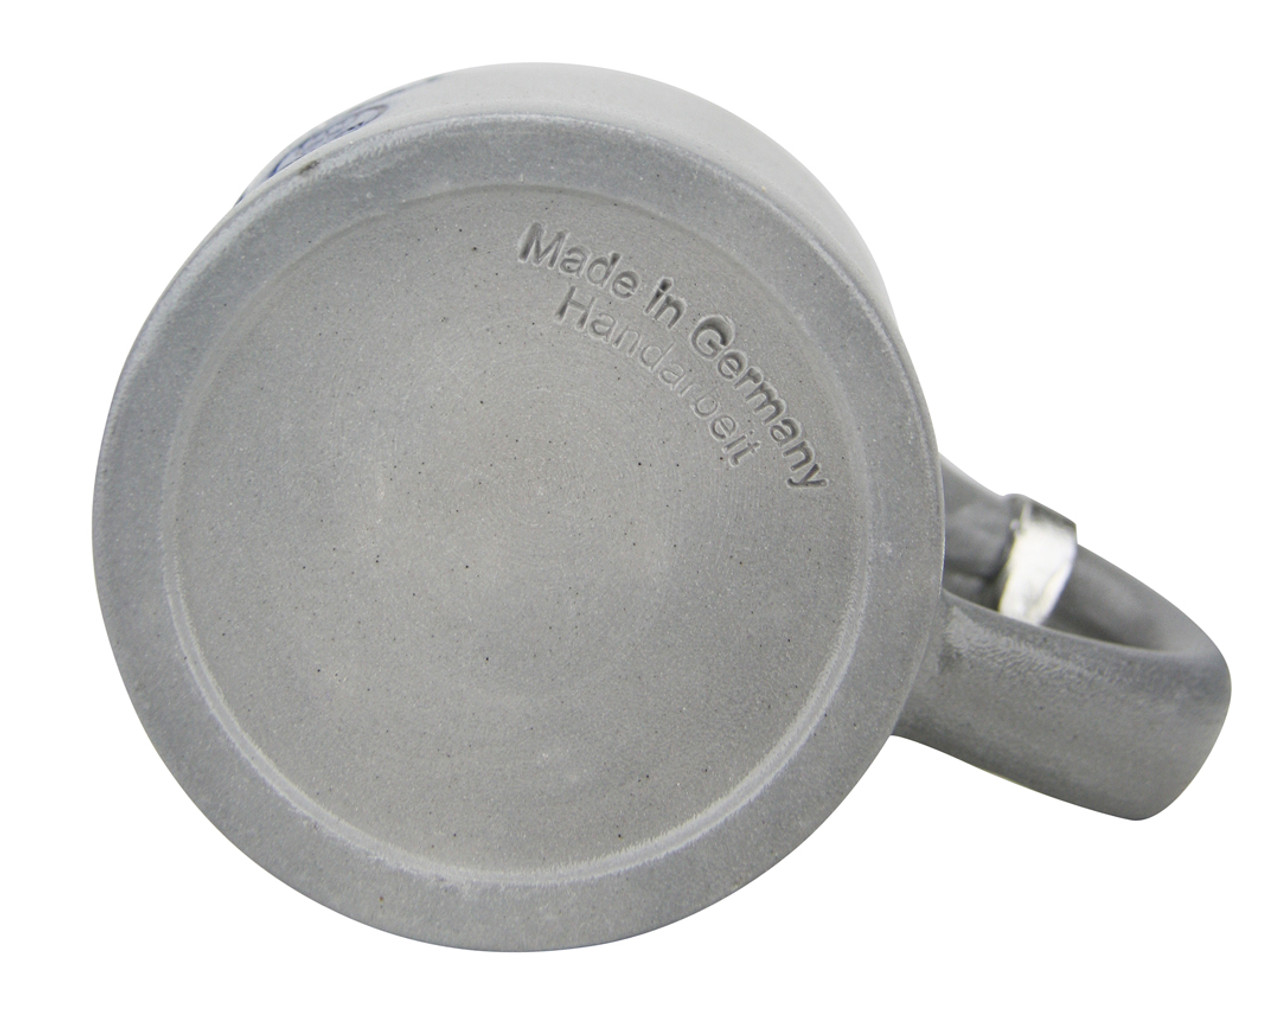 """Stamped """"Made in Germany Handarbeit"""" (hand-made) on the base."""